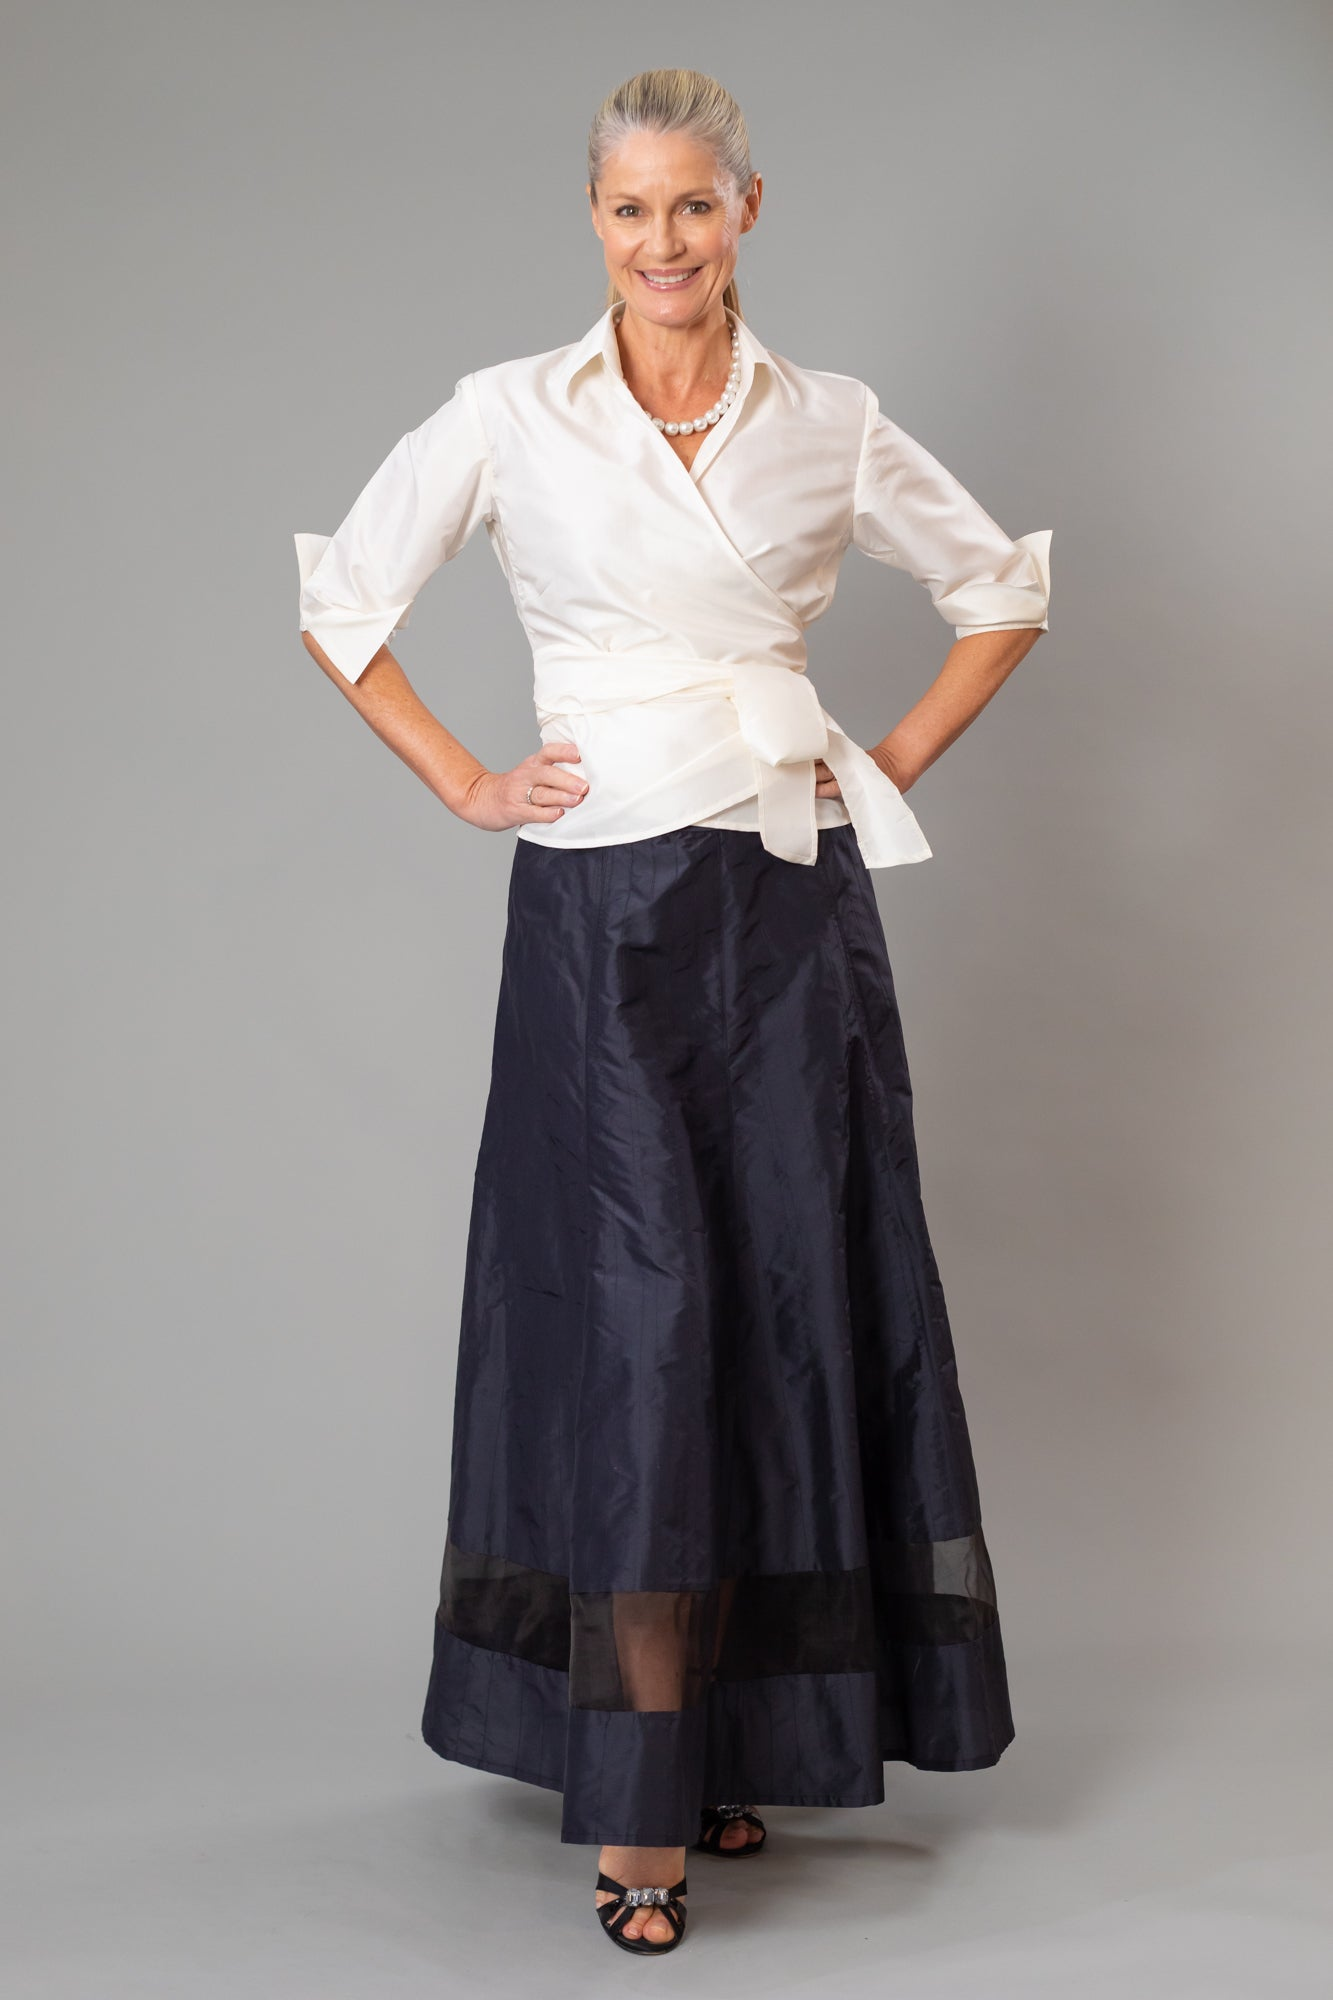 Cocktail Skirt - Long Black for the Mother of the Bride / Groom